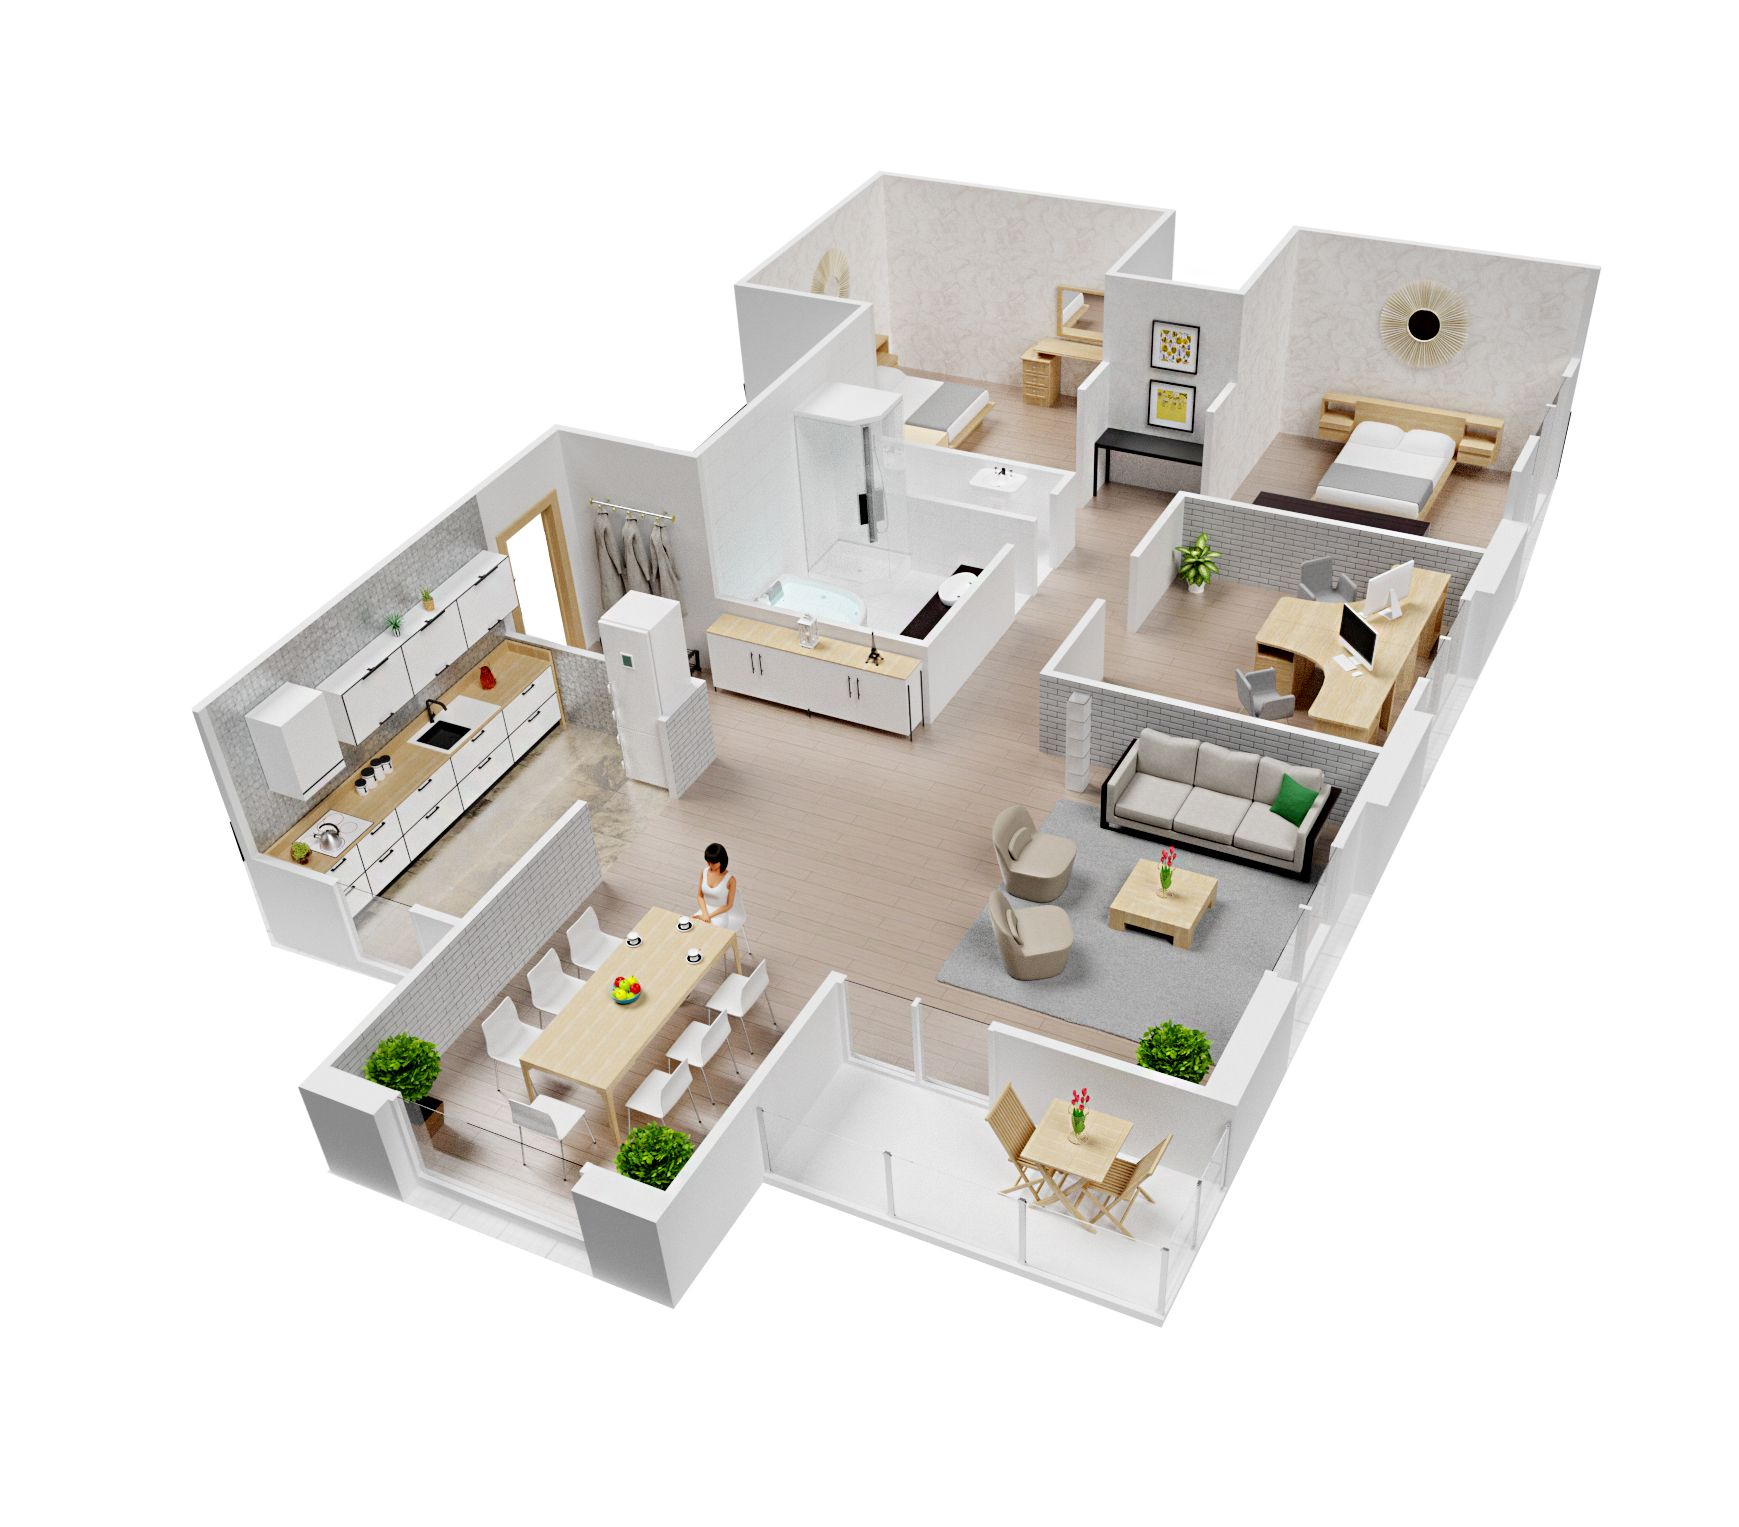 Interior Plan, House Interior, 3D Interior Plan, PLANNER